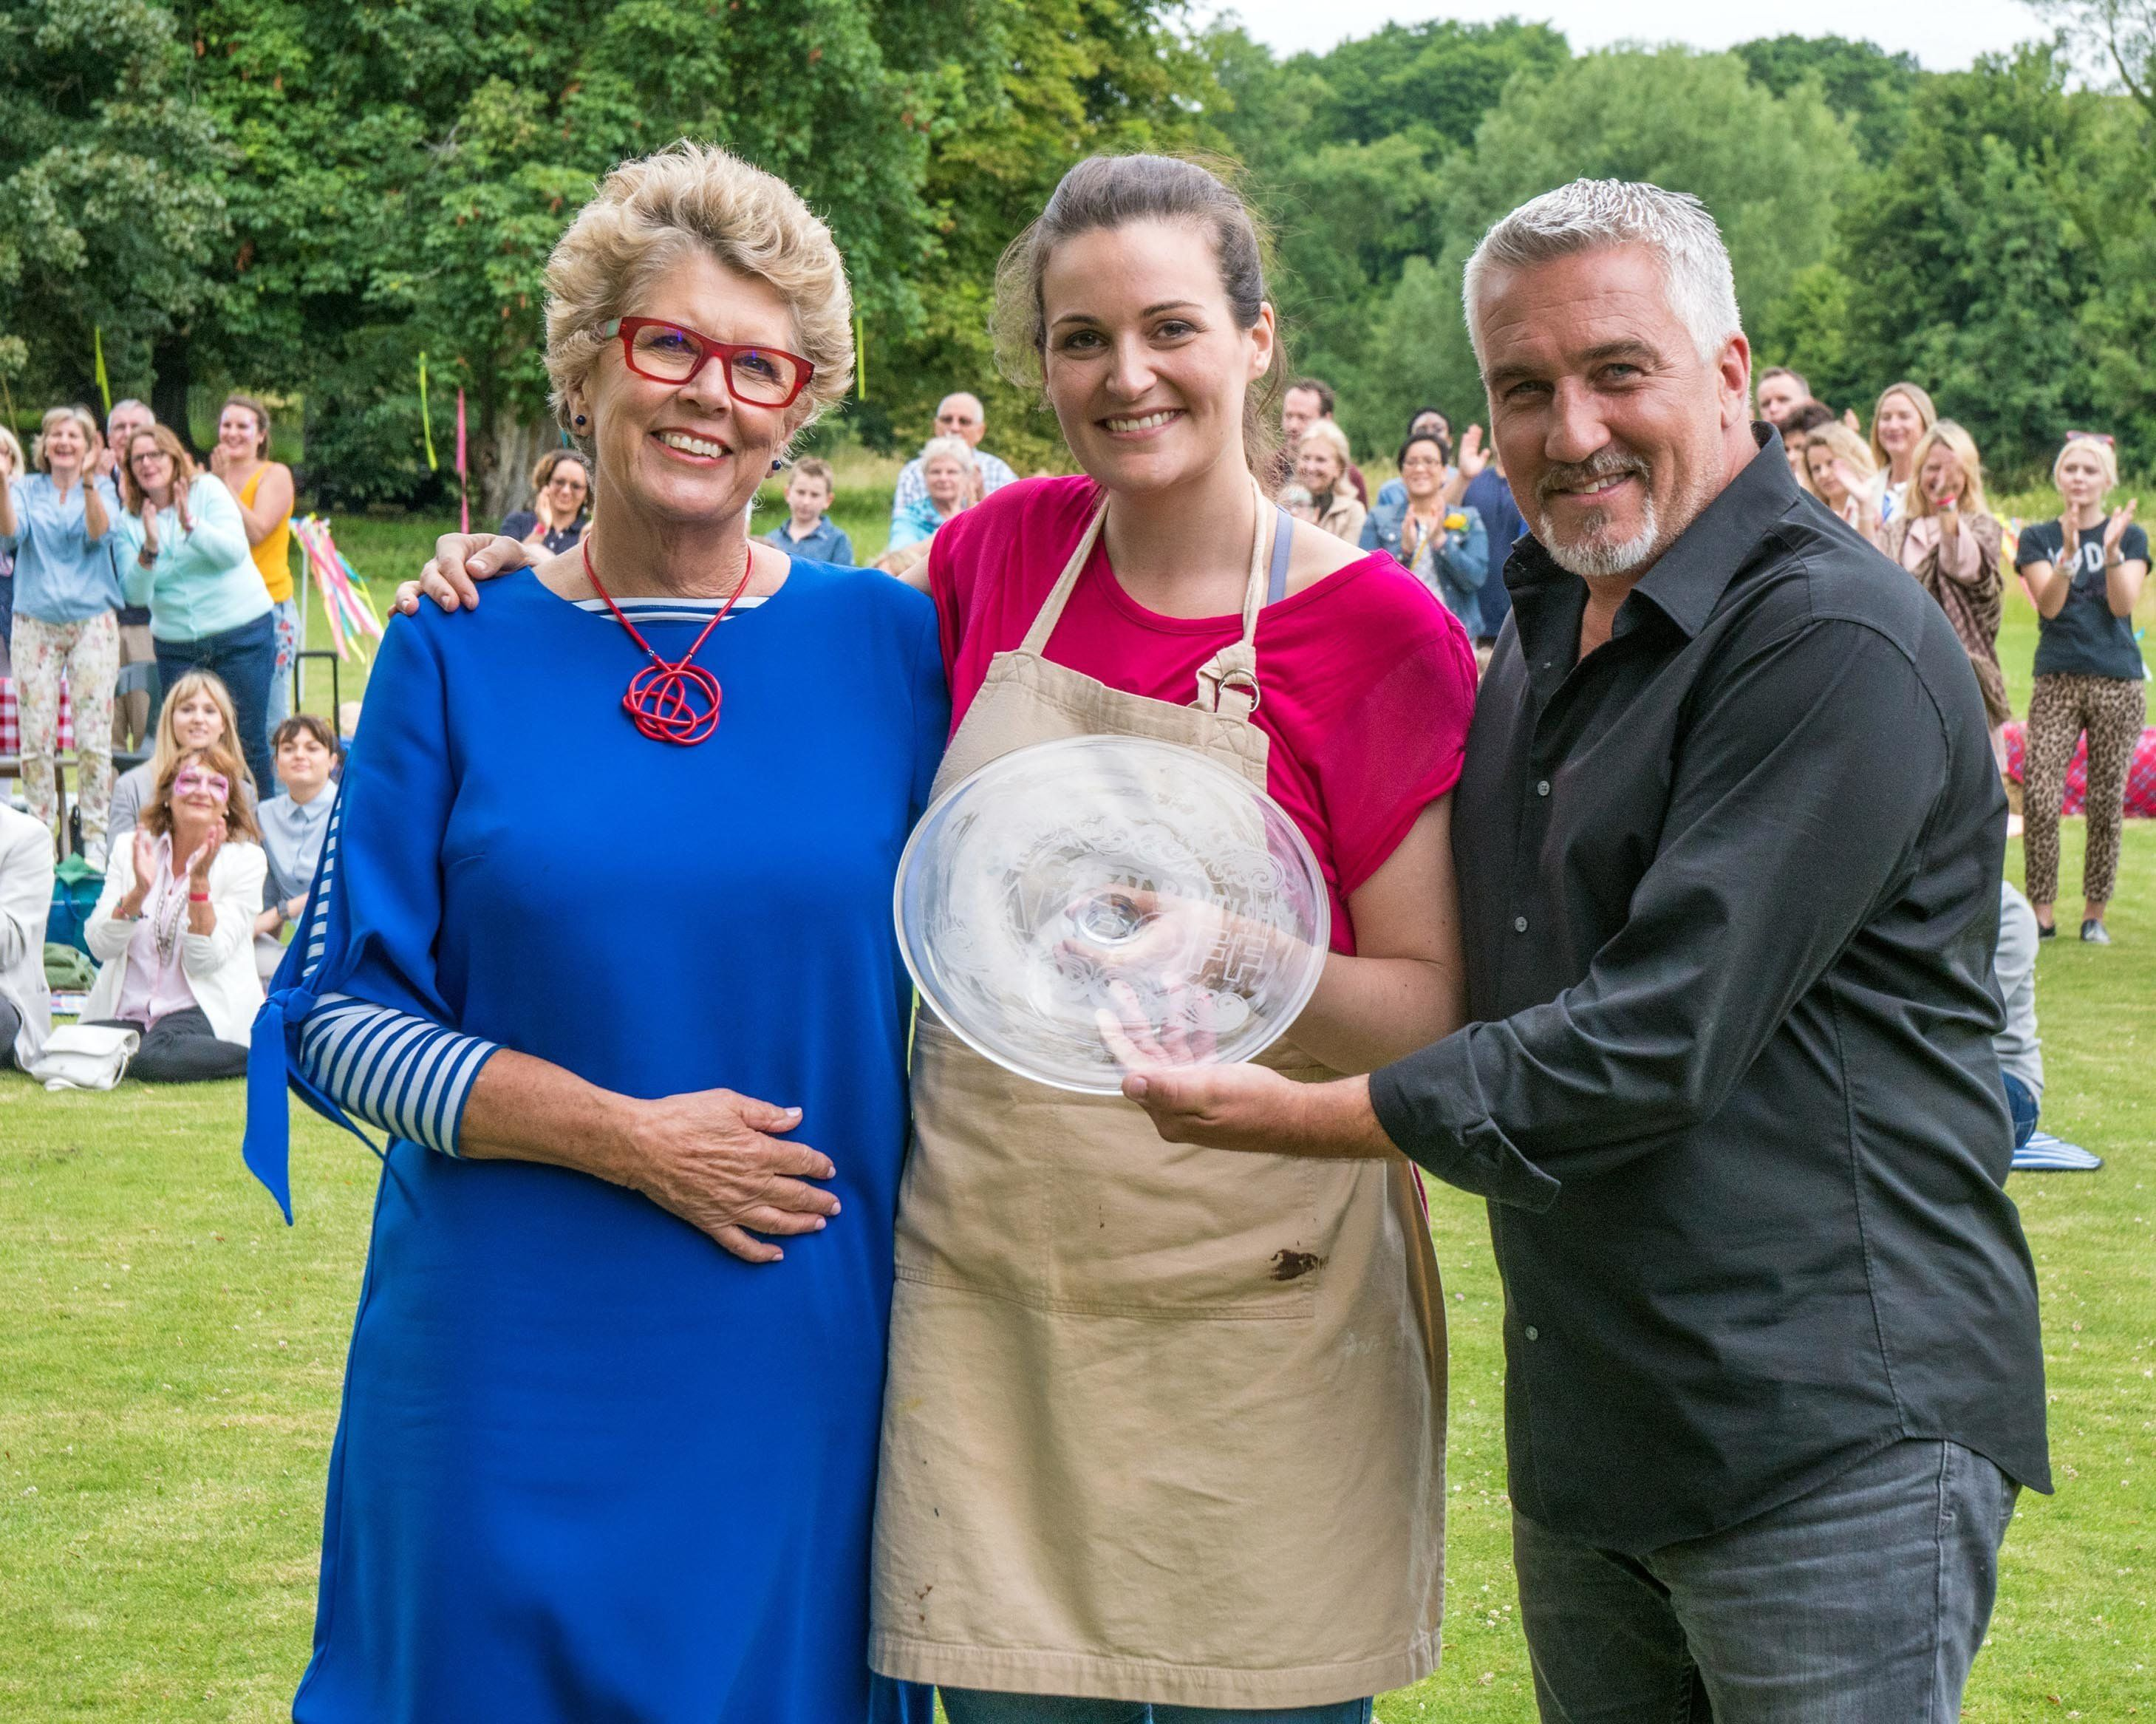 'Bake Off' Final Scores Huge Ratings As It's Confirmed Prue Leith WILL Return Next